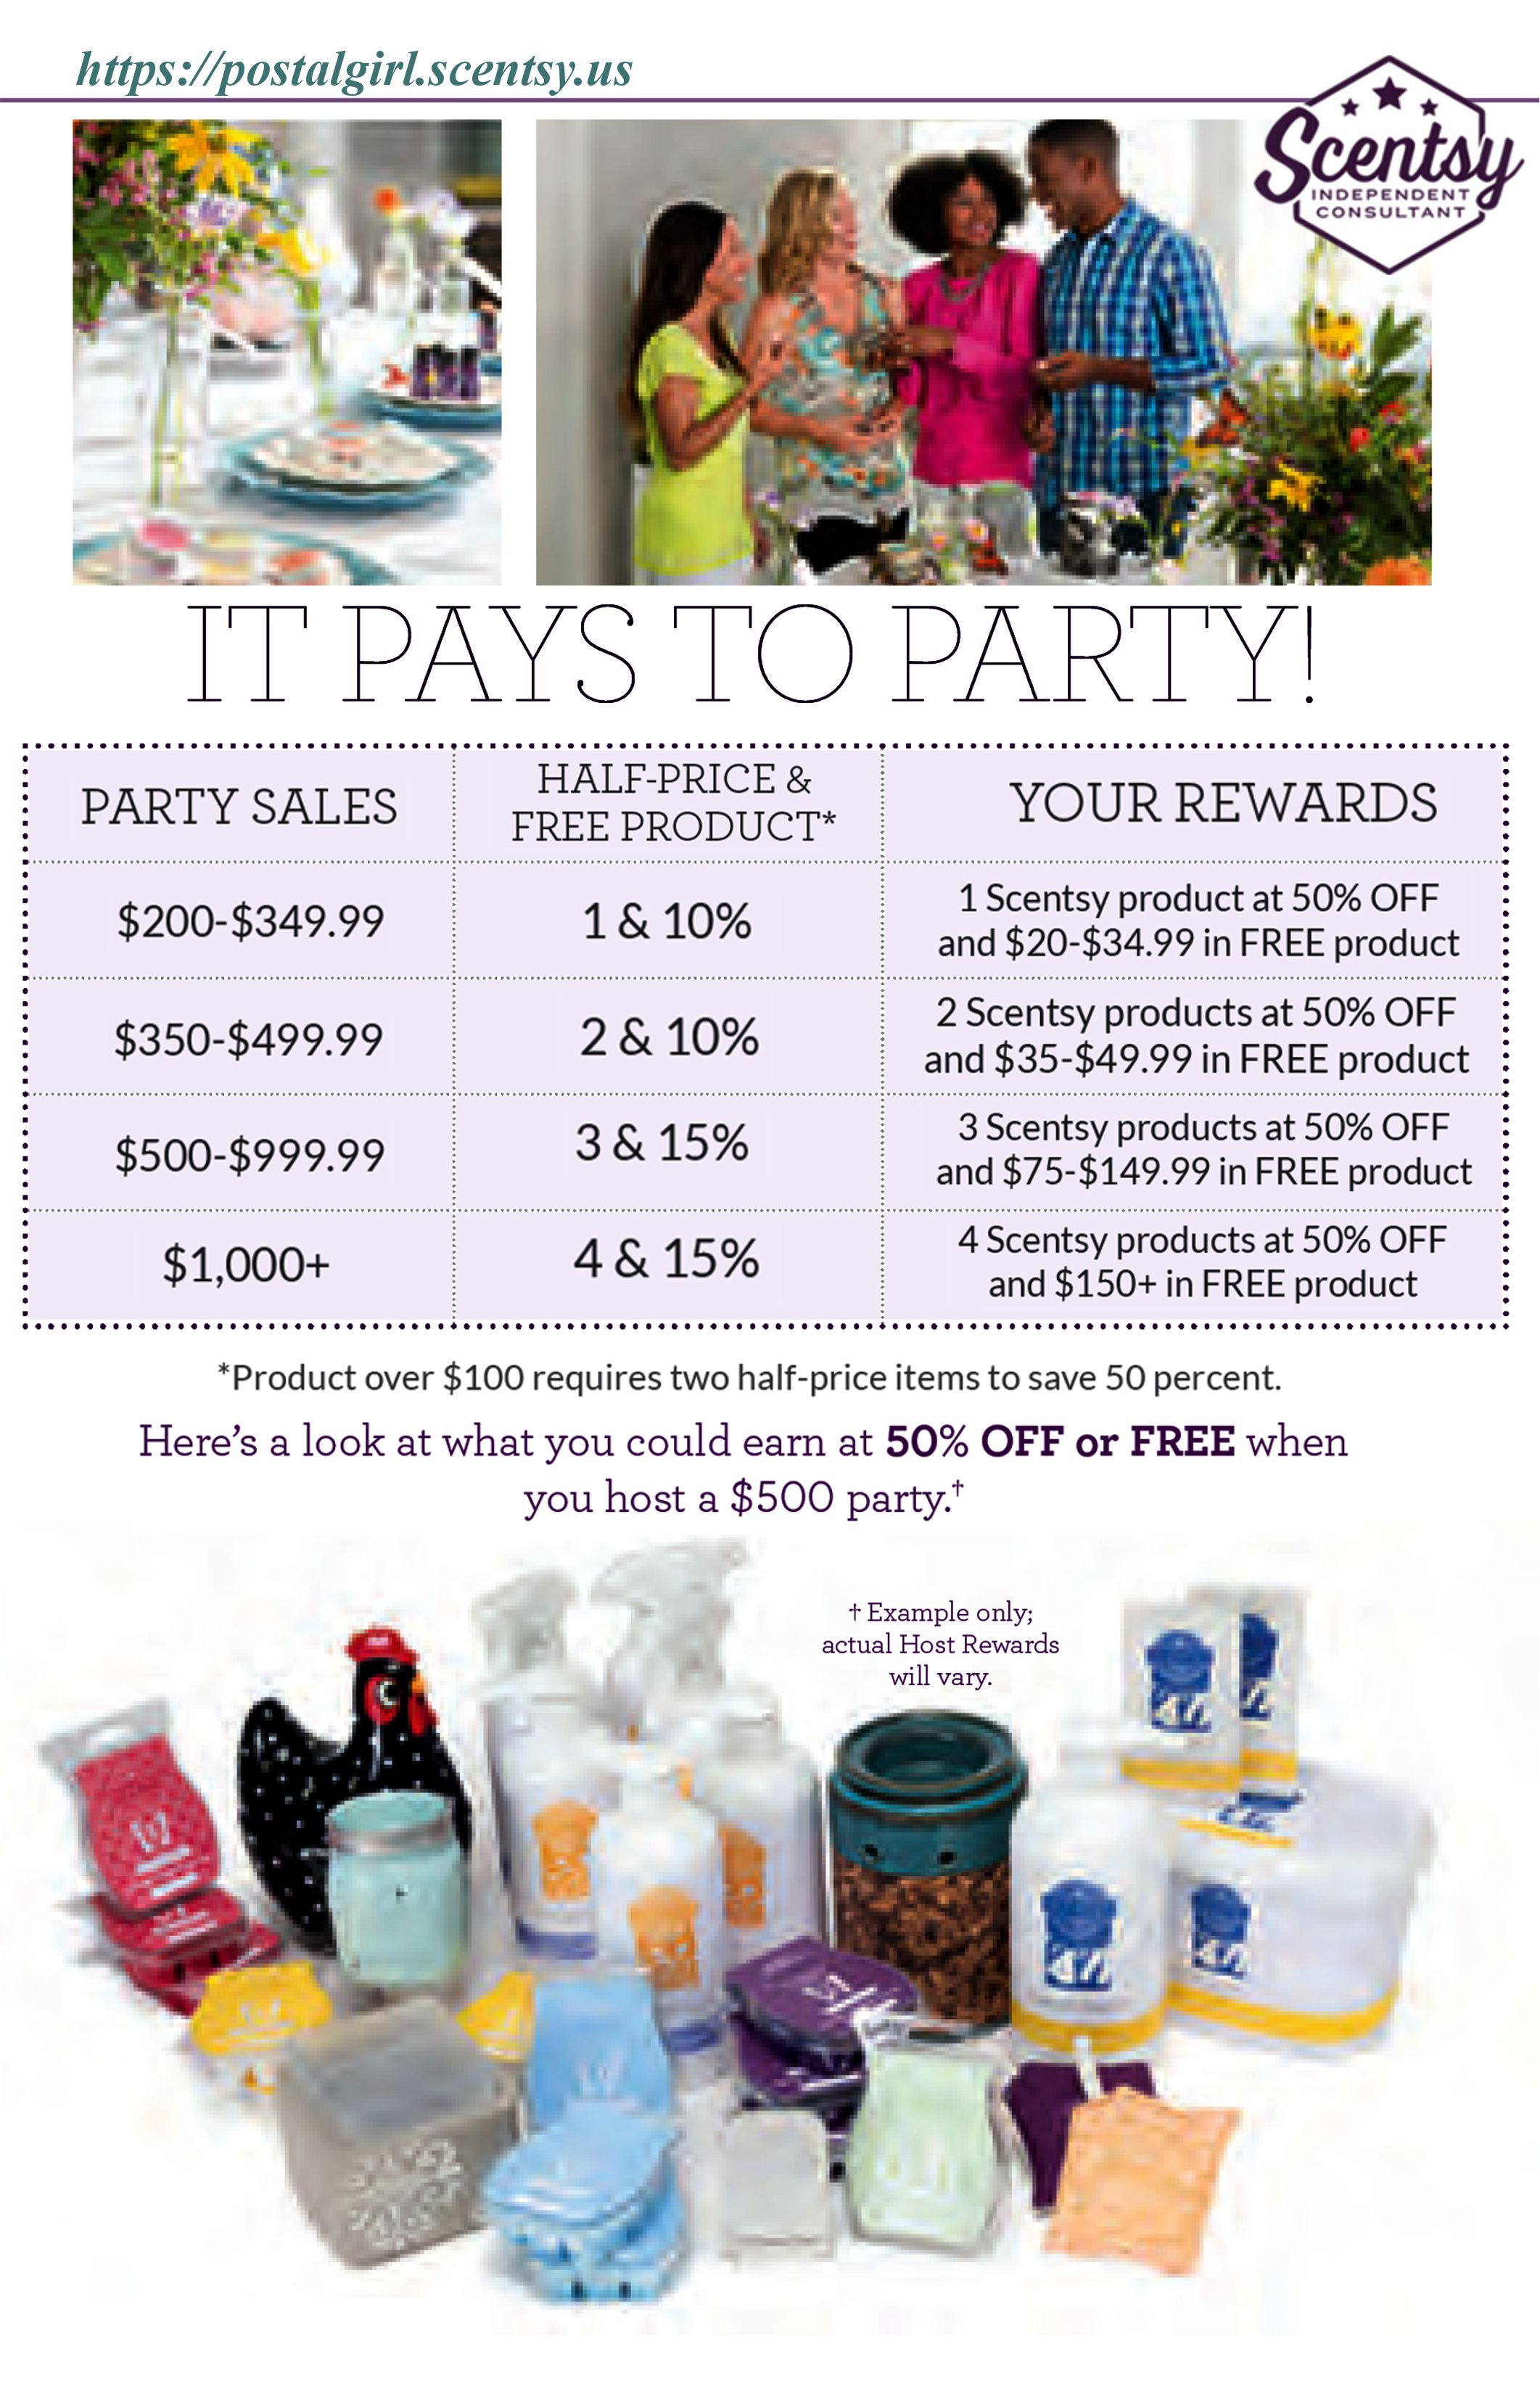 Scentsy Party Host Rewards And Party Sales Chart For Spring Summer 2016 Scentsy Half Price And Host Rewards Scentsy Hostess Rewards Scentsy Scentsy Hostess